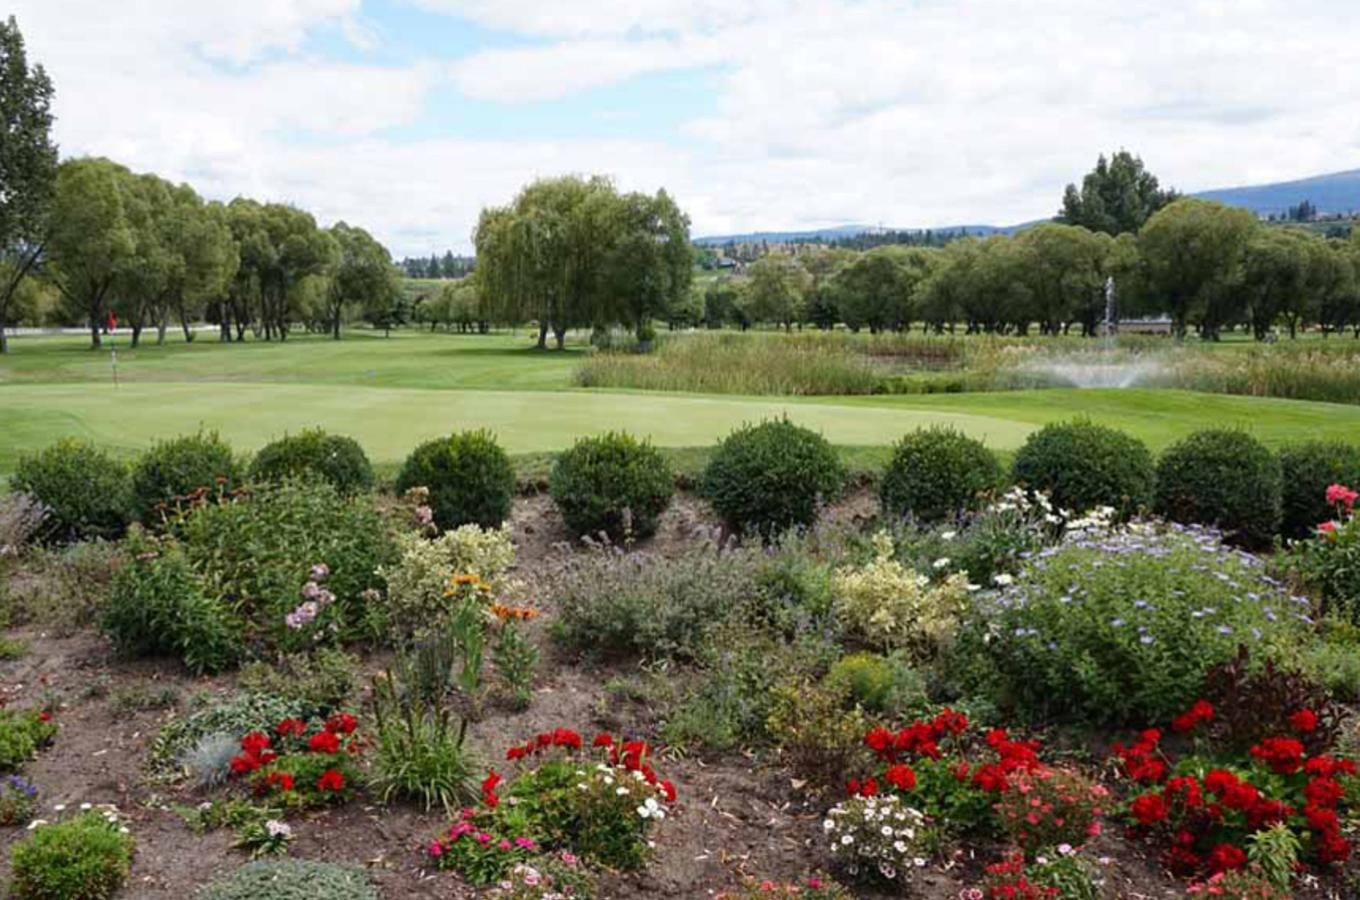 Michaelbrook Ranch Golf Club